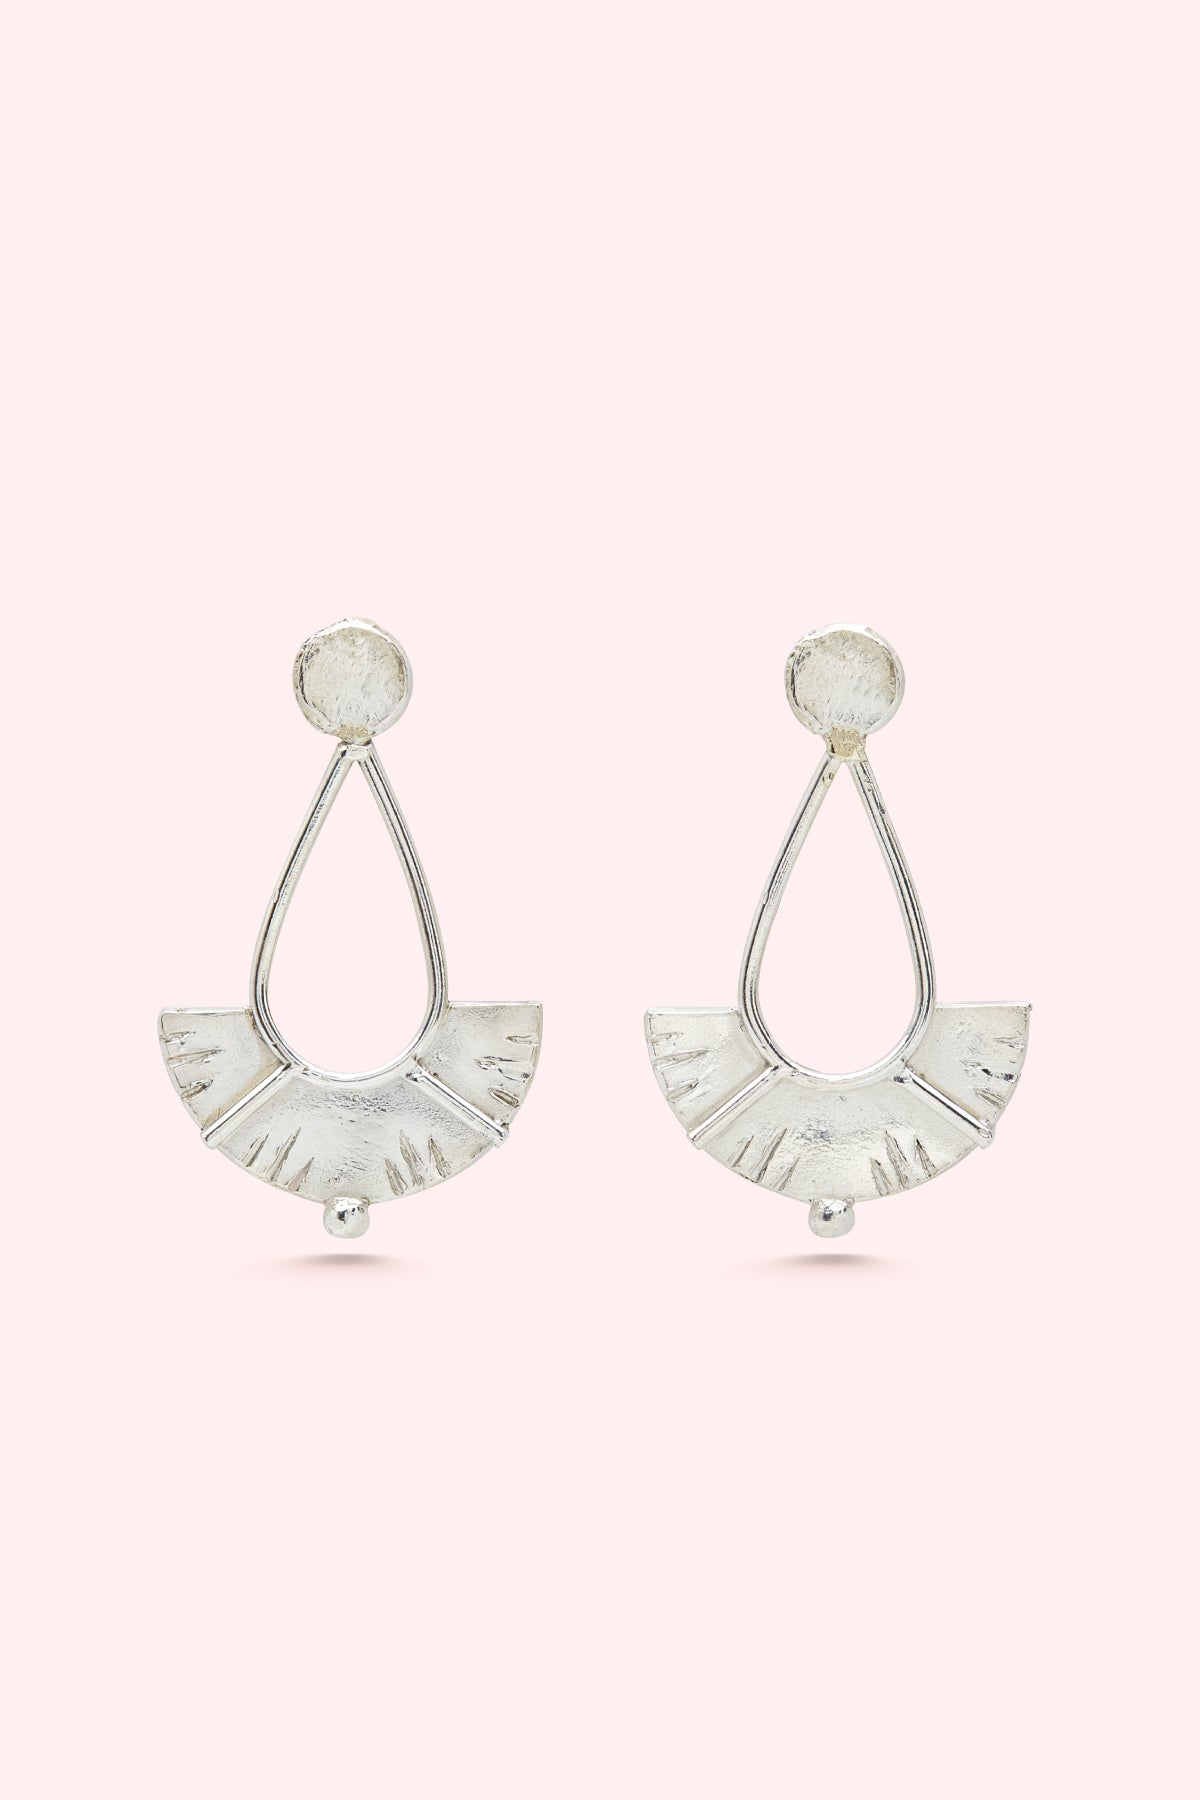 Silver Juno Drop Earrings Small-Meg Watson Jewellery-THE FASHION ADVOCATE-ethical sustainable Australian womens fashion online